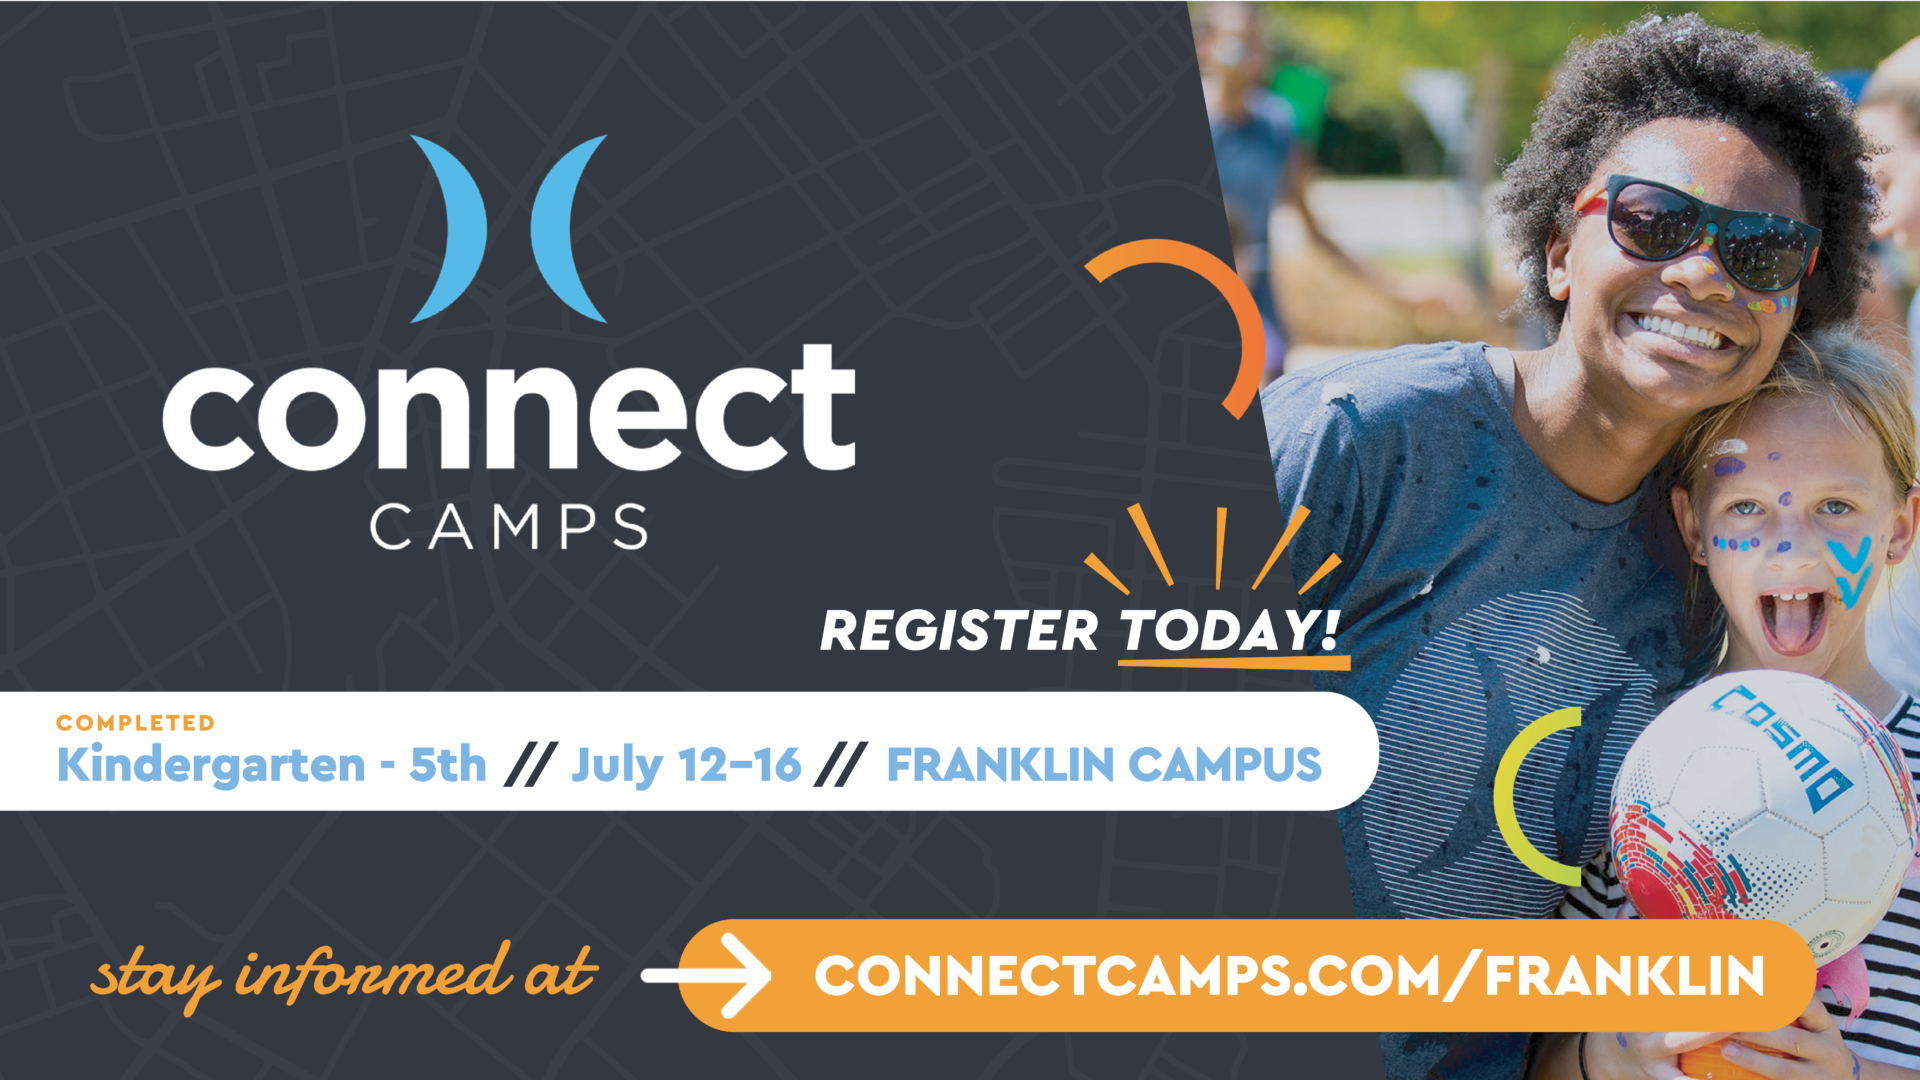 Connect Camps, day camps for children in Franklin, TN, kids activities, filled with non-stop fun, engaging activities, daily faith-based lessons, and the chance to make lasting friendships.